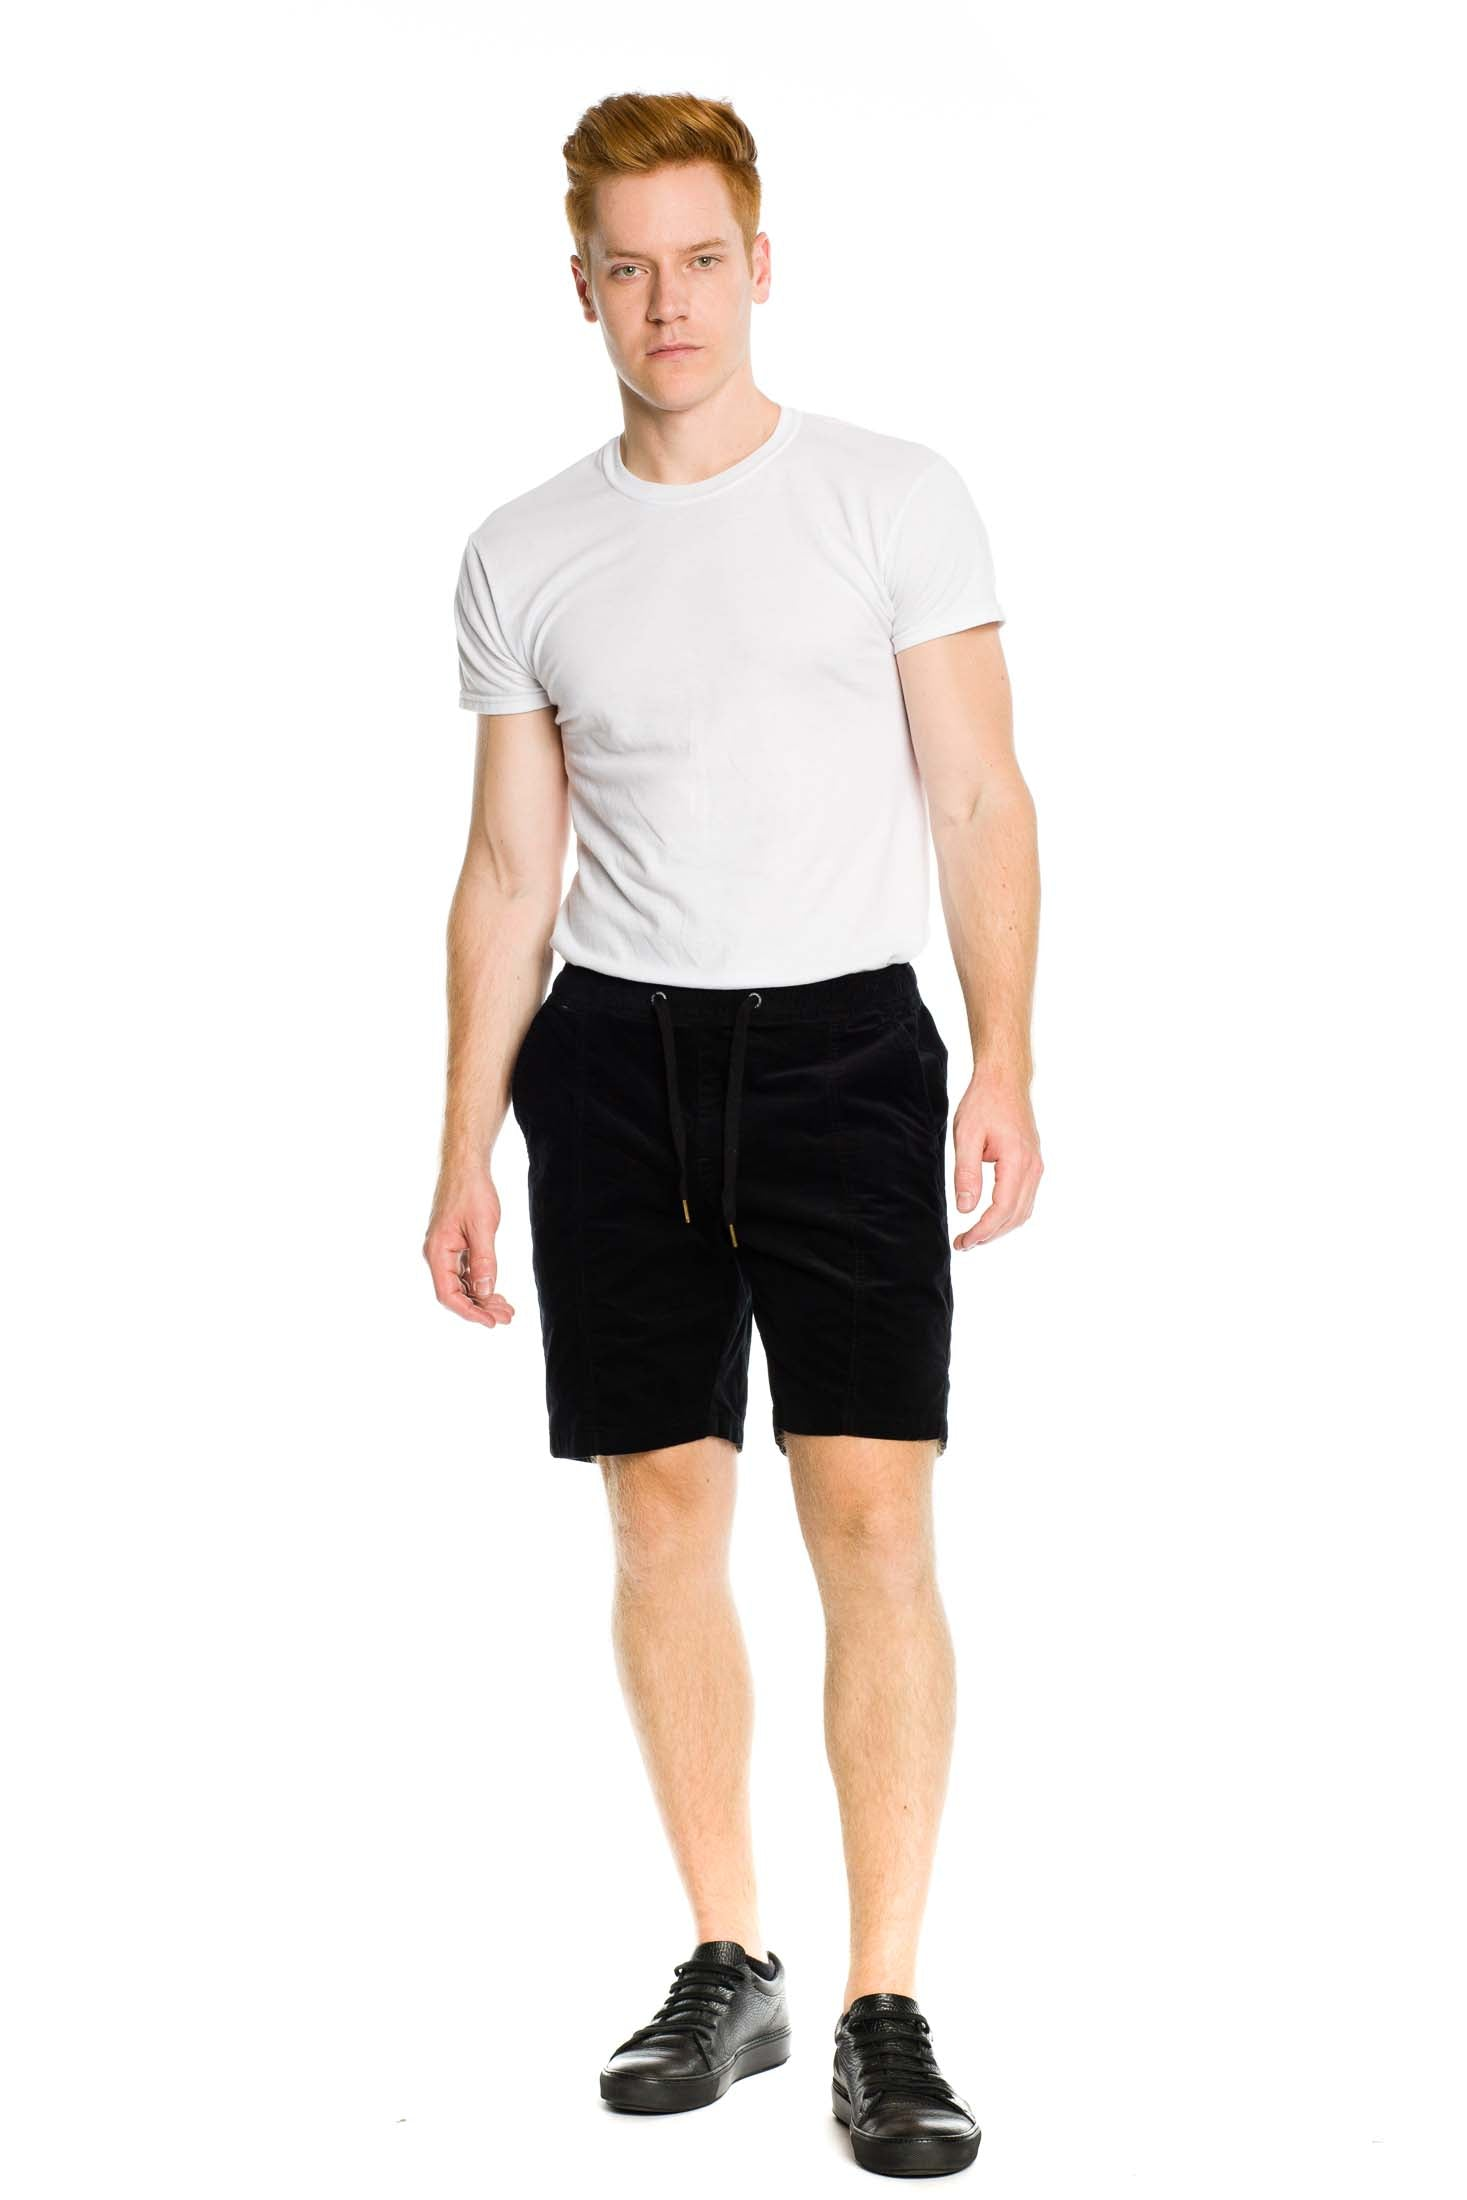 Johnson Short - Black - Ezekiel Clothing